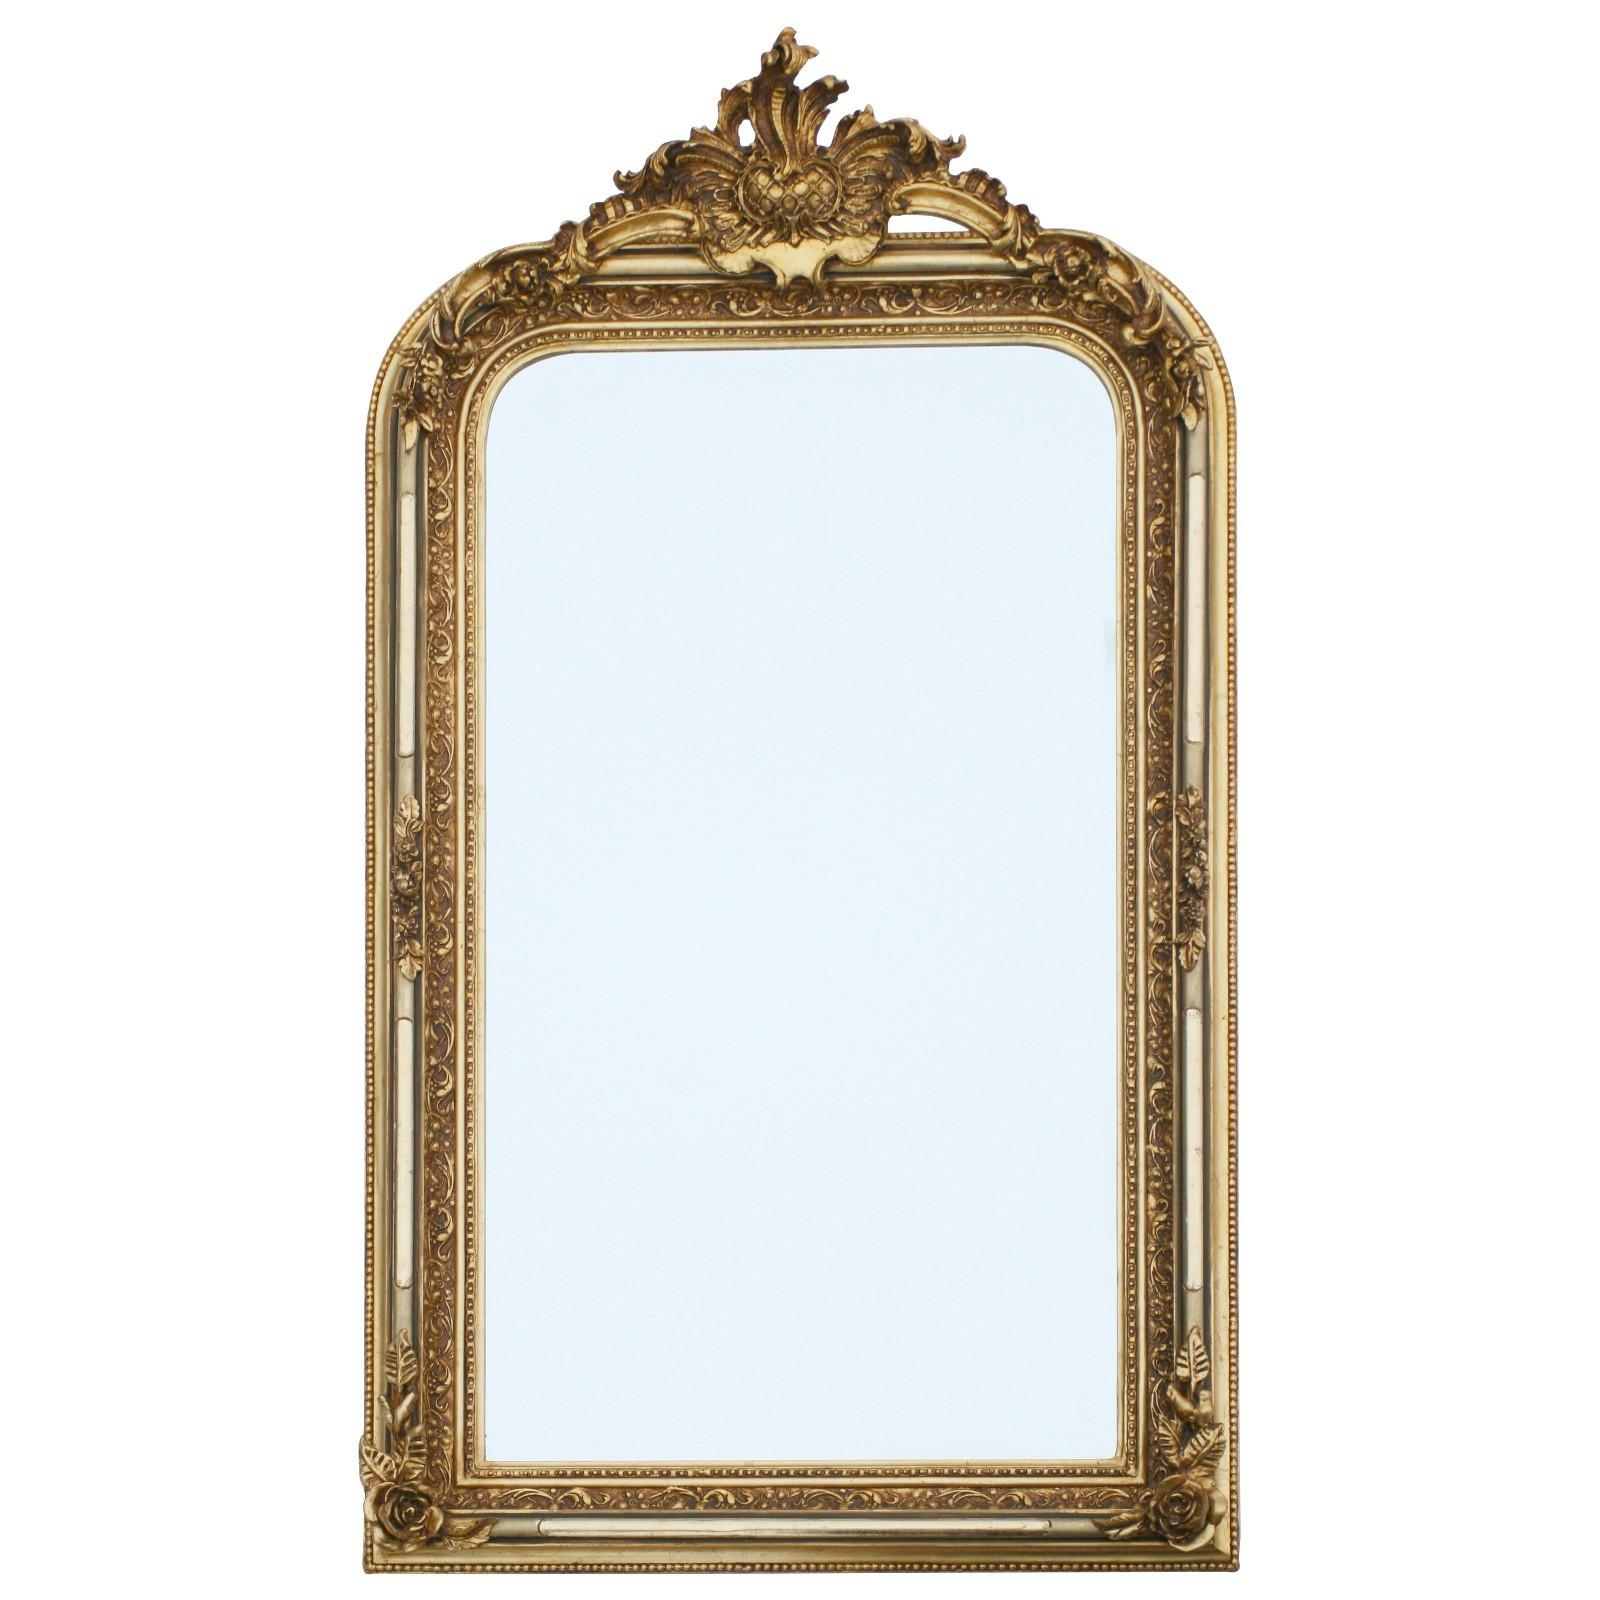 Wall Mirror Large Ostentatious Luxury Baroque Mirror With Bevelled With Regard To Large Baroque Mirror (Image 20 of 20)